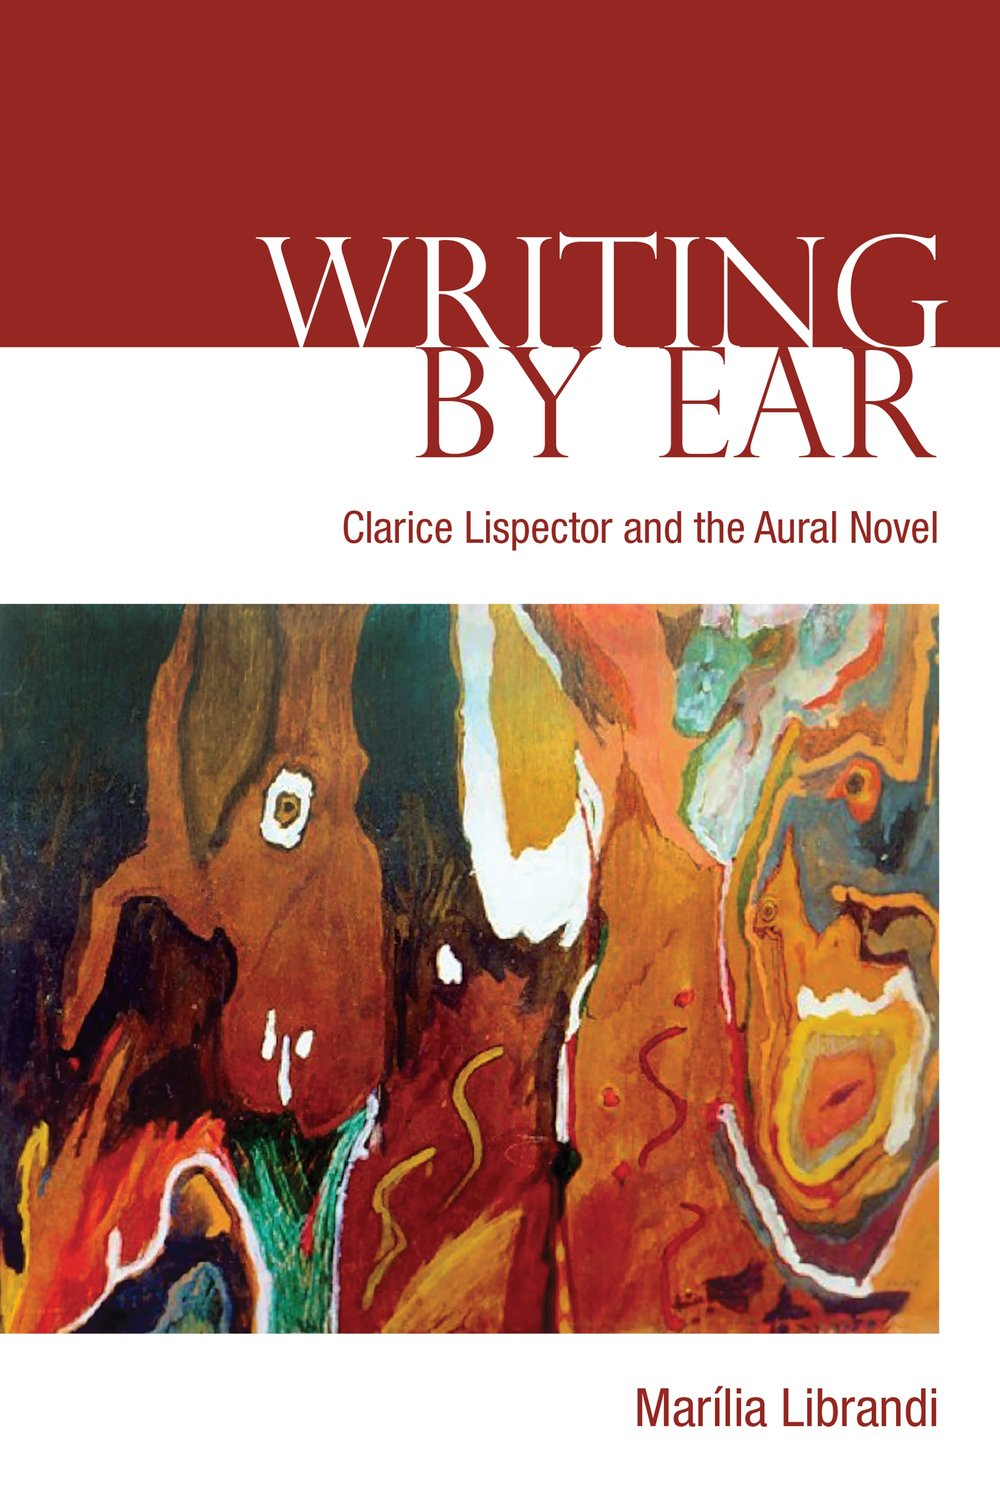 "- pre order: https://utorontopress.com/us/writing-by-ear-2Series: University of Toronto Romance SeriesConsidering Brazilian novelist Clarice Lispector's literature as a case study and a source of theory, Writing by Ear presents an aural theory of the novel based on readings of Near to the Wild Heart (1943), The Besieged City (1949), The Passion According to G.H.(1964), Agua Viva (1973), The Hour of the Star (1977), and A Breath of Life (1978).What is the specific aesthetic for which listening-in-writing calls? What is the relation that listening-in-writing establishes with silence, echo, and the sounds of the world? How are we to understand authorship when writers present themselves as objects of reception rather than subjects of production? In which ways does the robust oral and aural culture of Brazil shape literary genres and forms? In addressing these questions, Writing by Ear works in dialogue with philosophy, psychoanalysis, and sound studies to contemplate the relationship between orality and writing.Citing writers such as Machado de Assis, Oswald de Andrade and João Guimarães Rosa, as well as Mia Couto and Toni Morrison, Writing By Ear opens up a broader dialogue on listening and literature, considering the aesthetic, ethical, and ecological reverberations of the imaginary. Writing by Ear is concerned at once with shedding light on the narrative representation of listening and with a broader reconceptualization of fiction through listening, considering it an auditory practice that transcends the dichotomy of speech and writing, and it can be considered part of a ""listening turn"" in literary studies."